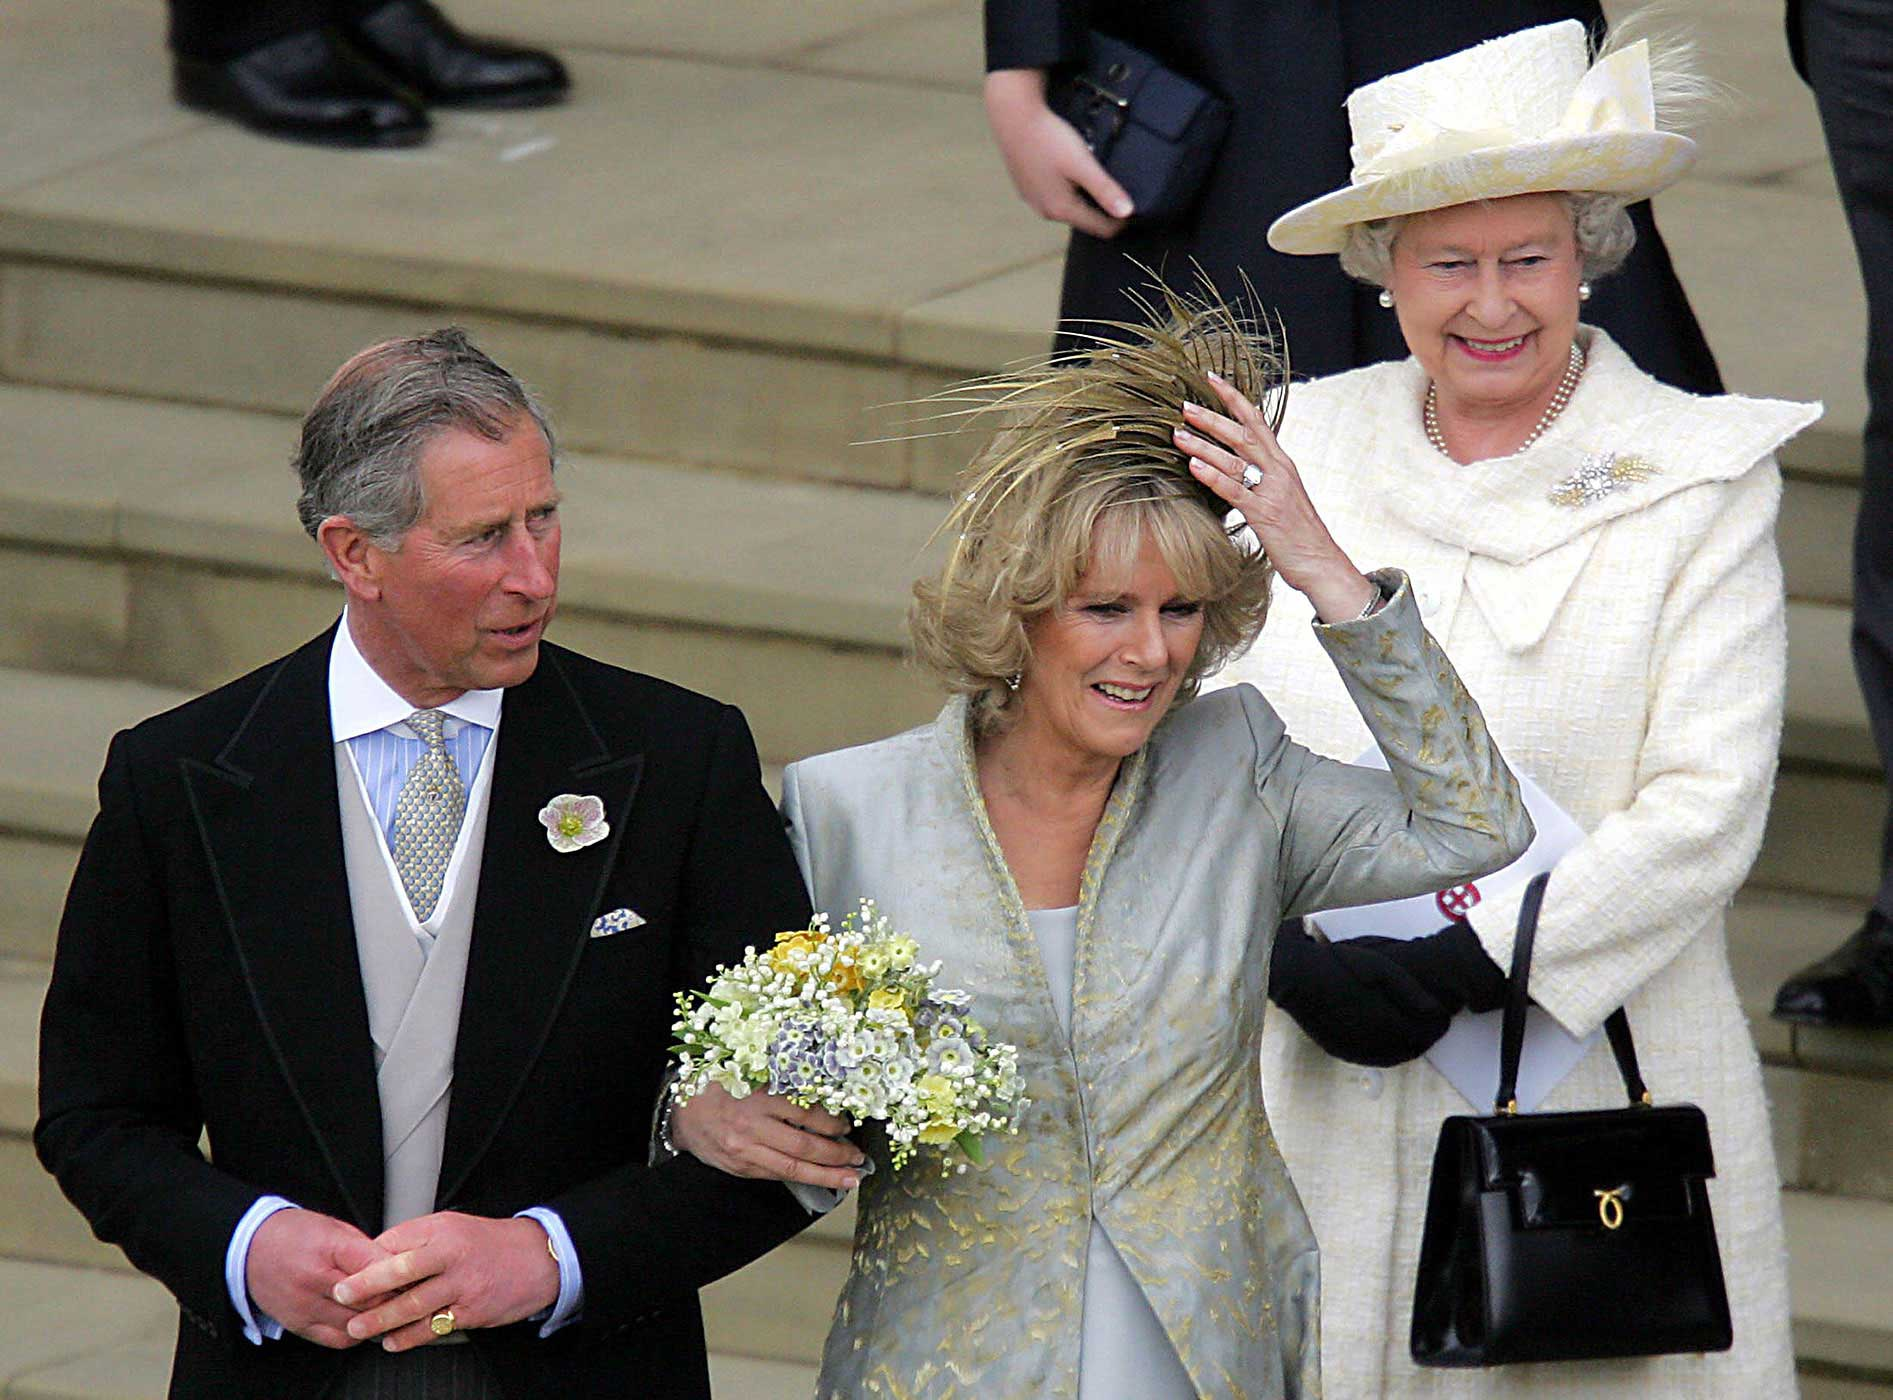 Prince Charles and Camilla, Duchess of Cornwall, smile as they leave St. George's Chapel on their wedding day on April 9, 2005. Queen Elizabeth II, who gave the longtime lovers her blessing, looks on.